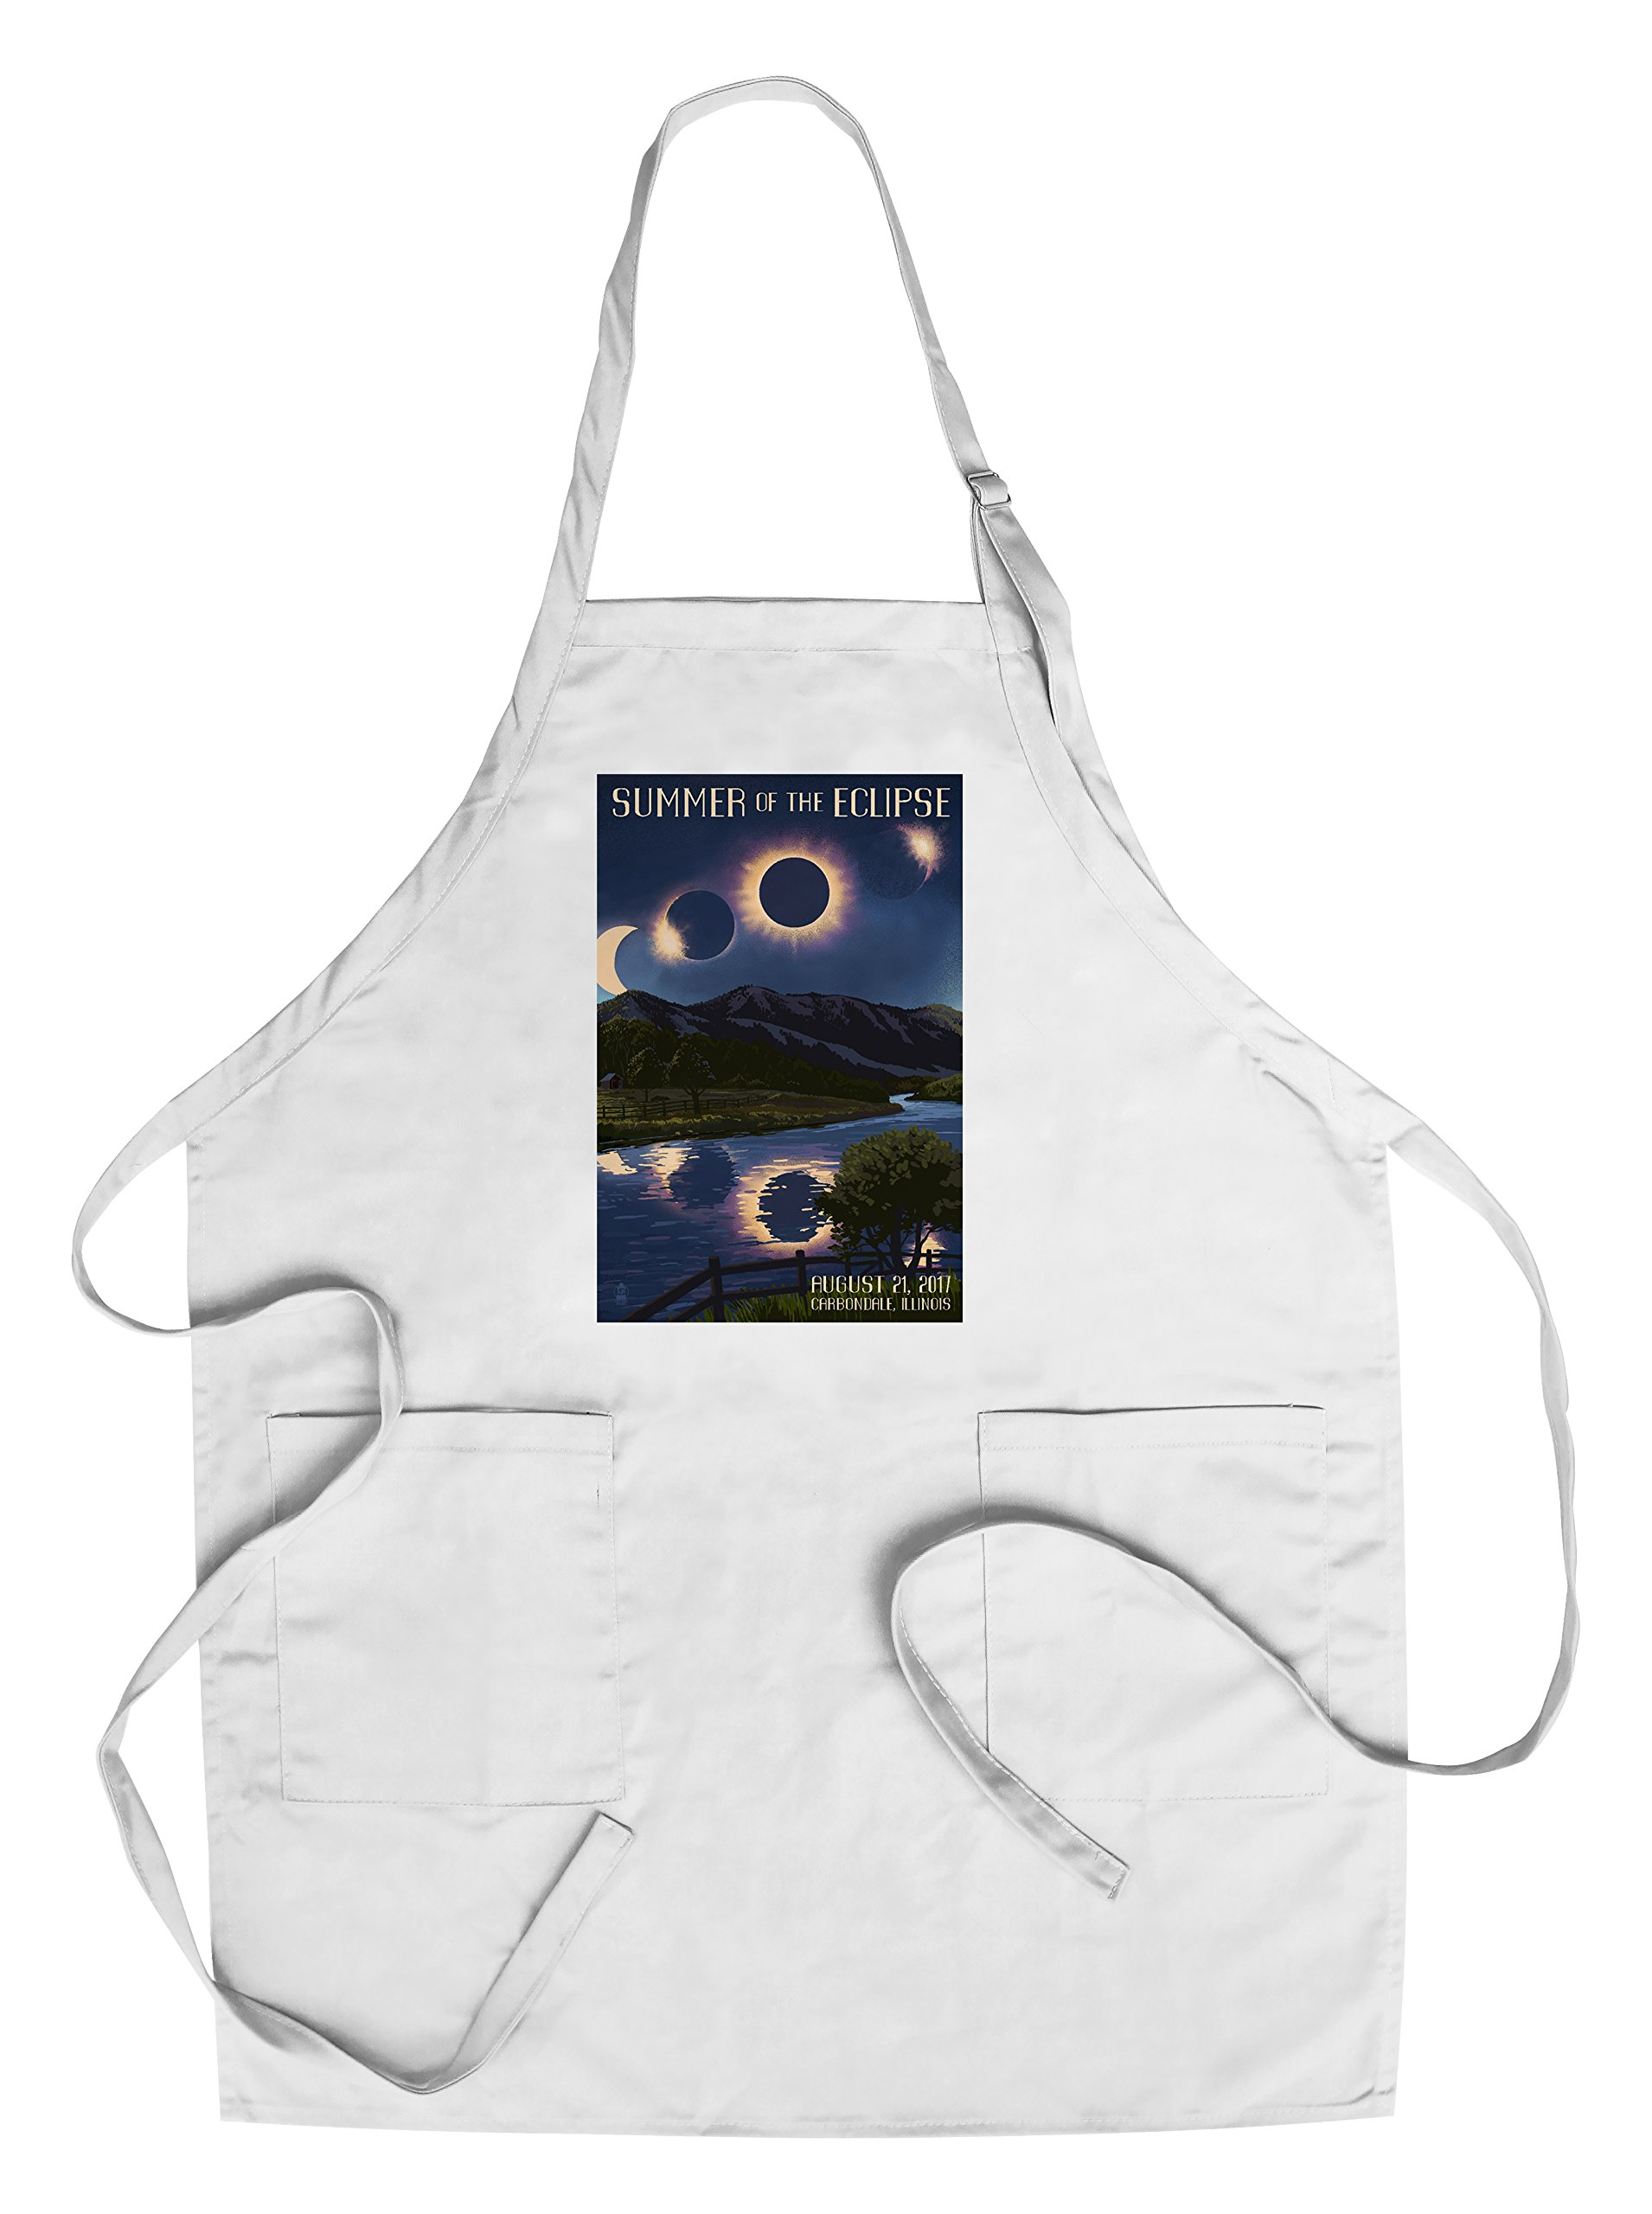 Carbondale, Illinois - Solar Eclipse 2017 - Summer of the Eclipse (Cotton/Polyester Chef's Apron)